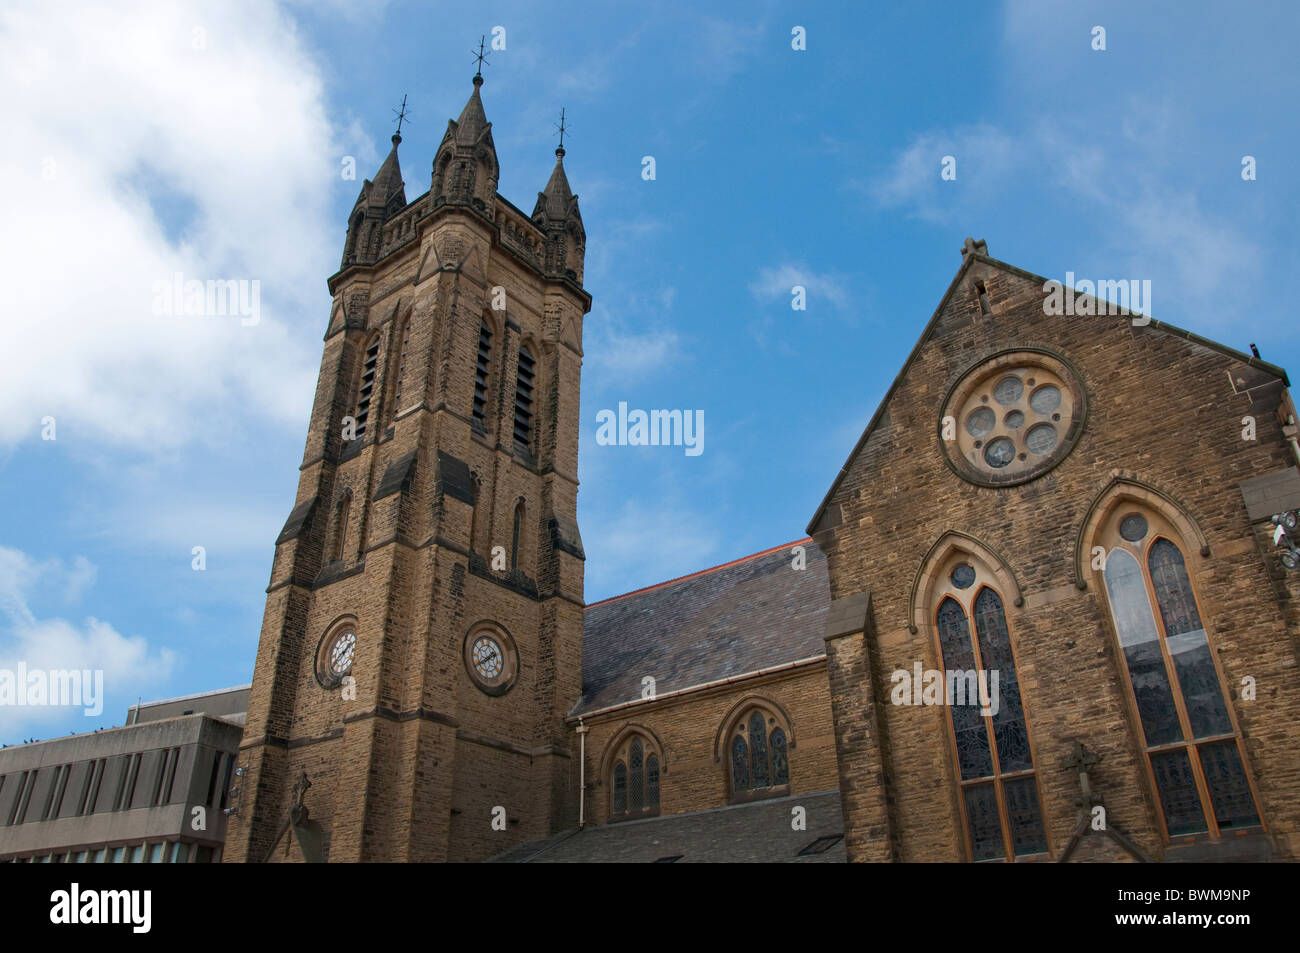 St John the Evangelist in Blackpool on the coast of Lancashire in Northern England - Stock Image